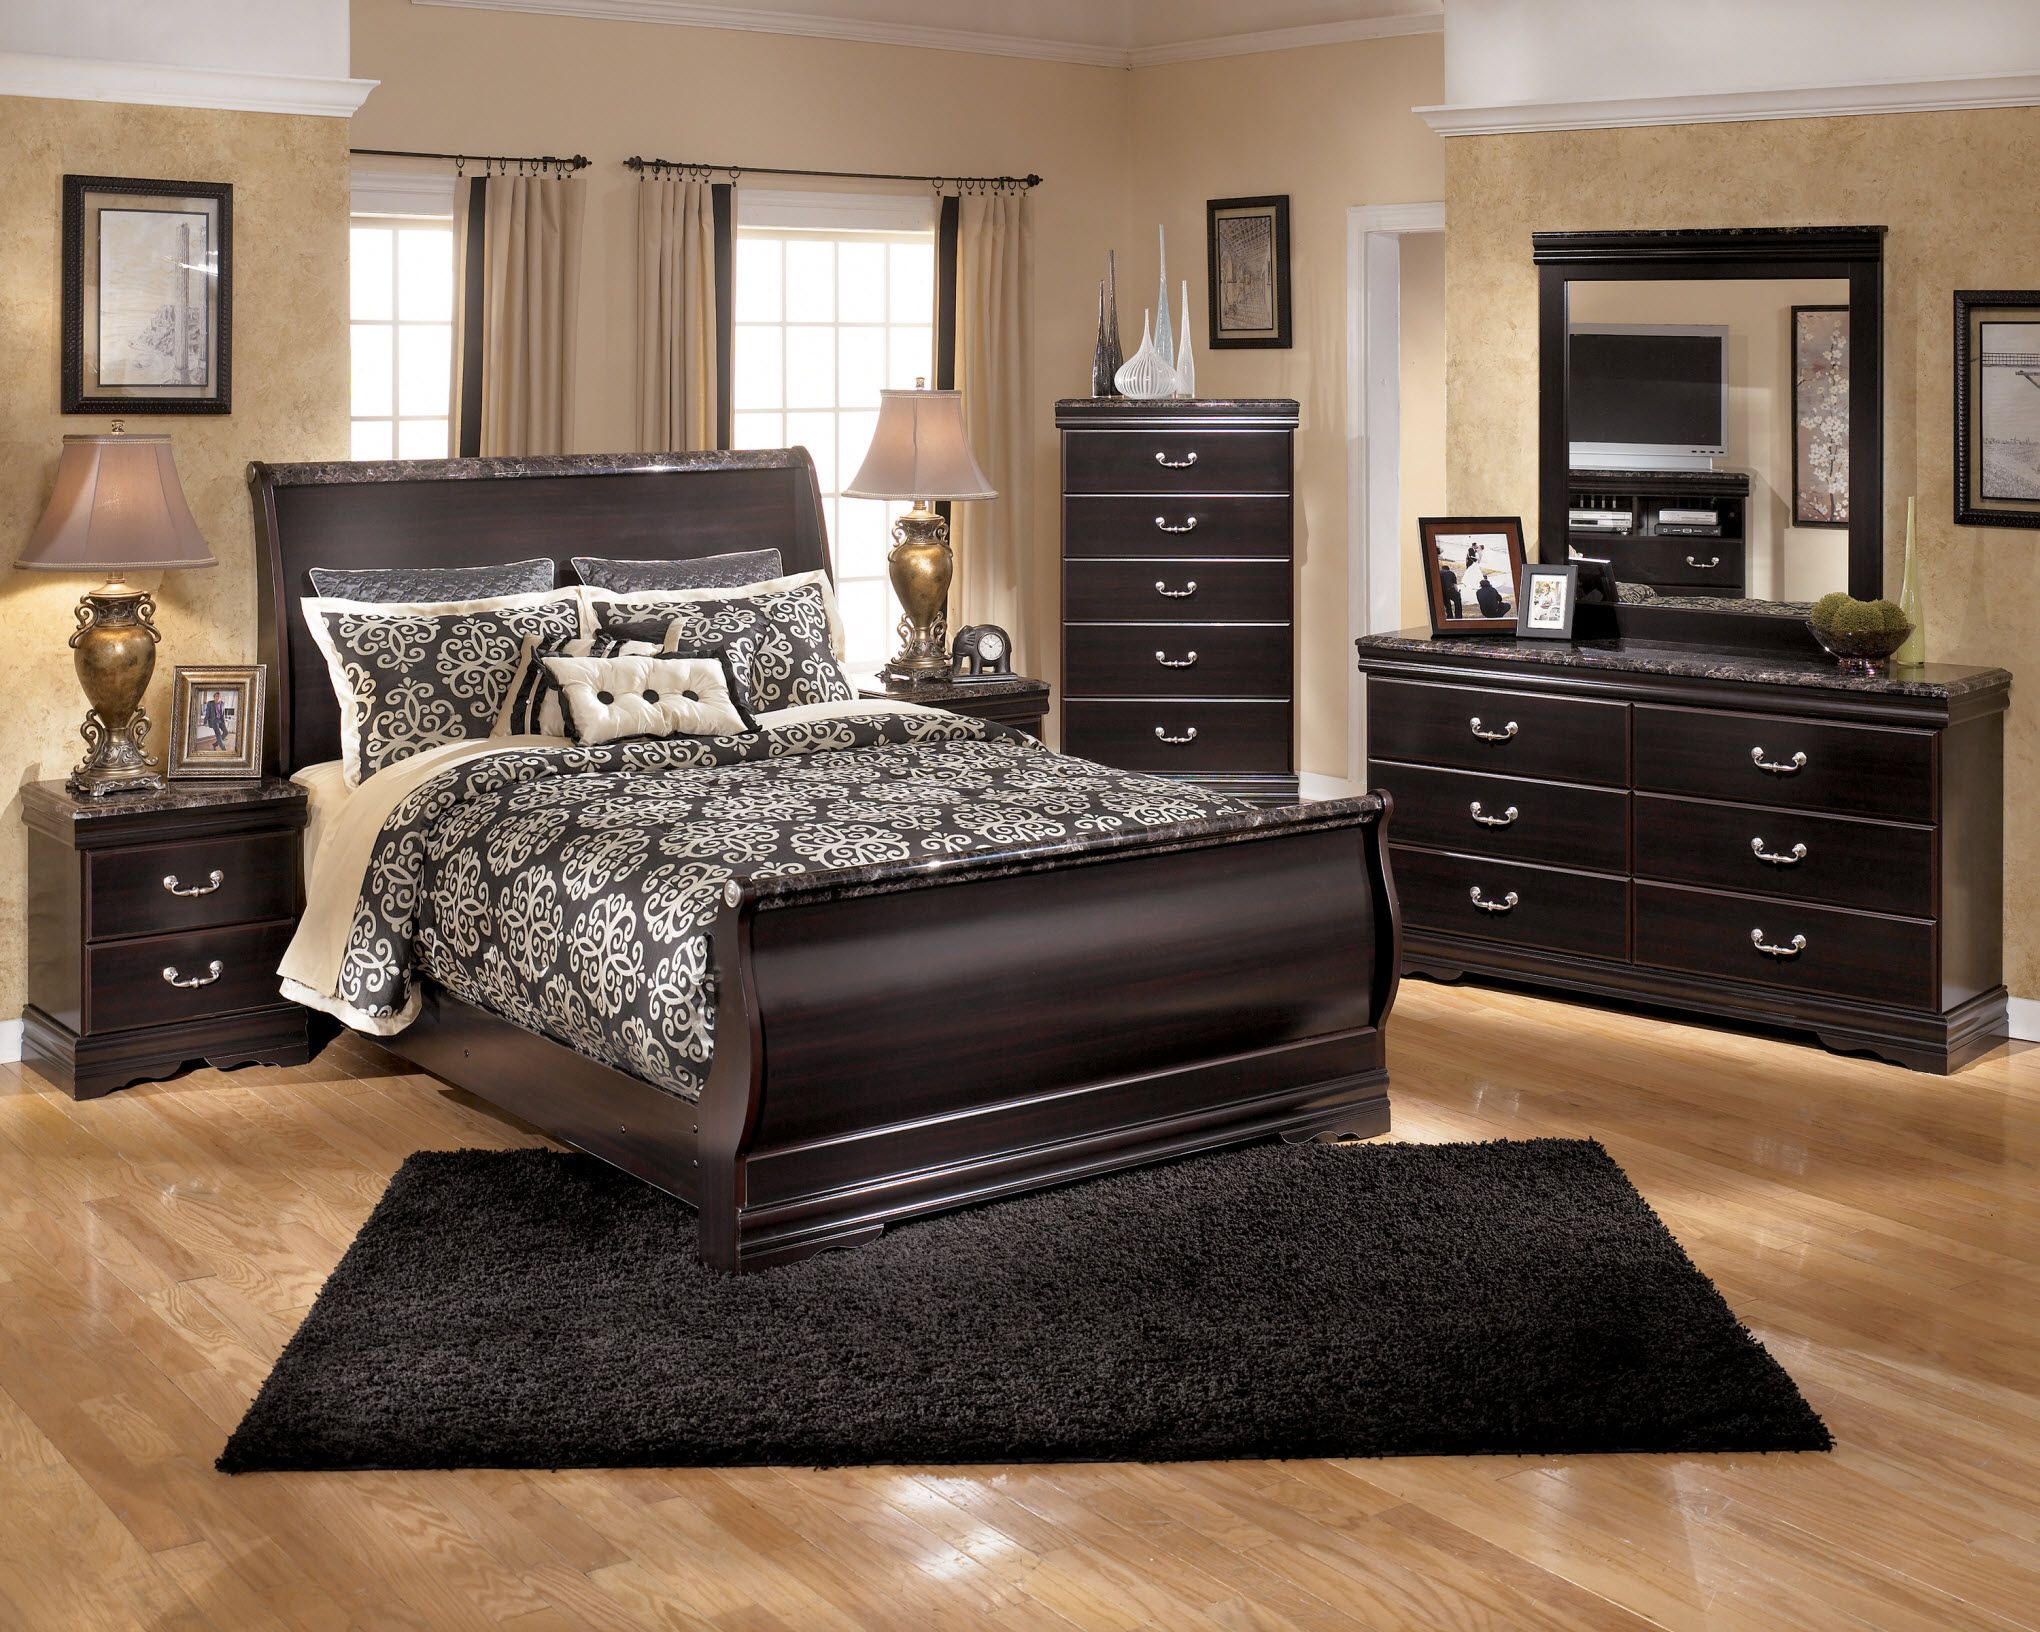 Elegant wood modern master bedroom set feat wood grain cincinnati ohio - Bedroom Sets Ashley Furniture Google Search